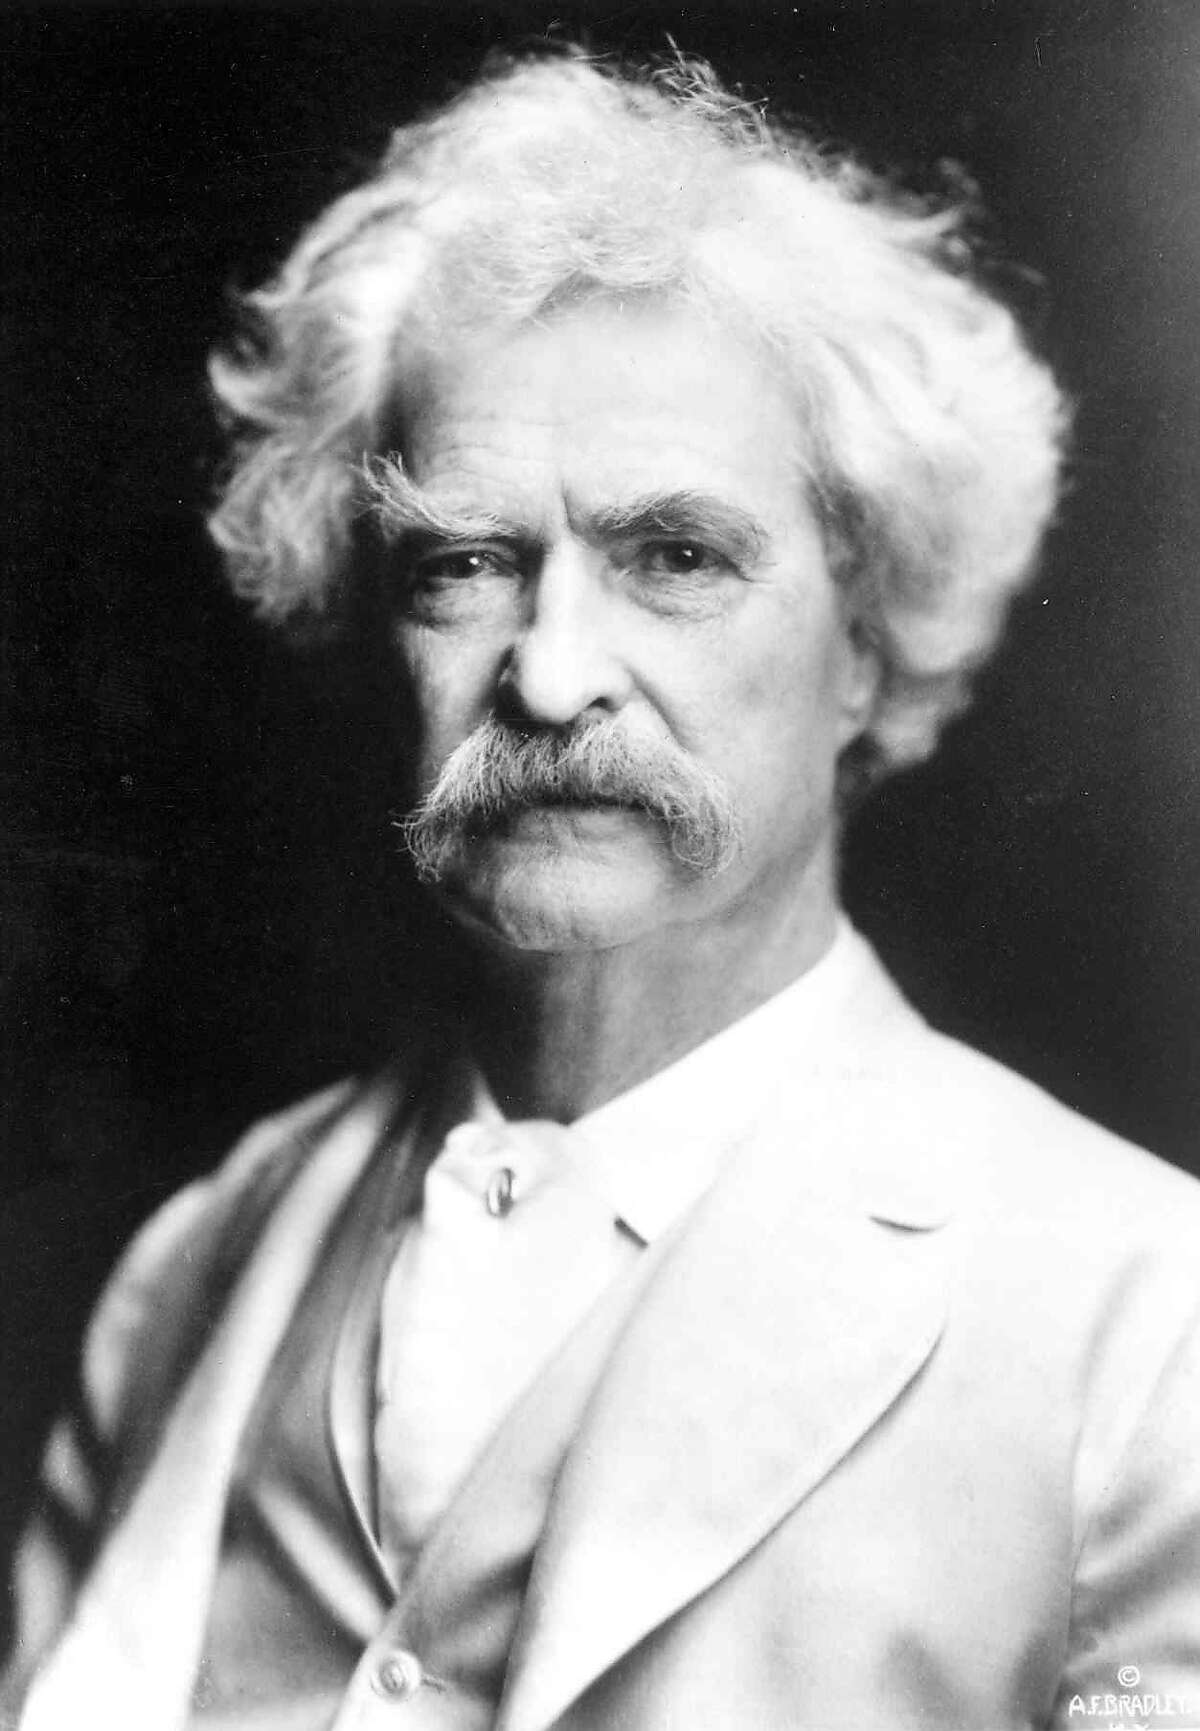 Legendary writer Samuel L. Clemens, who wrote under the nameMark Twain, lived in Redding, Conn. before passing away at his country home there in 1910.